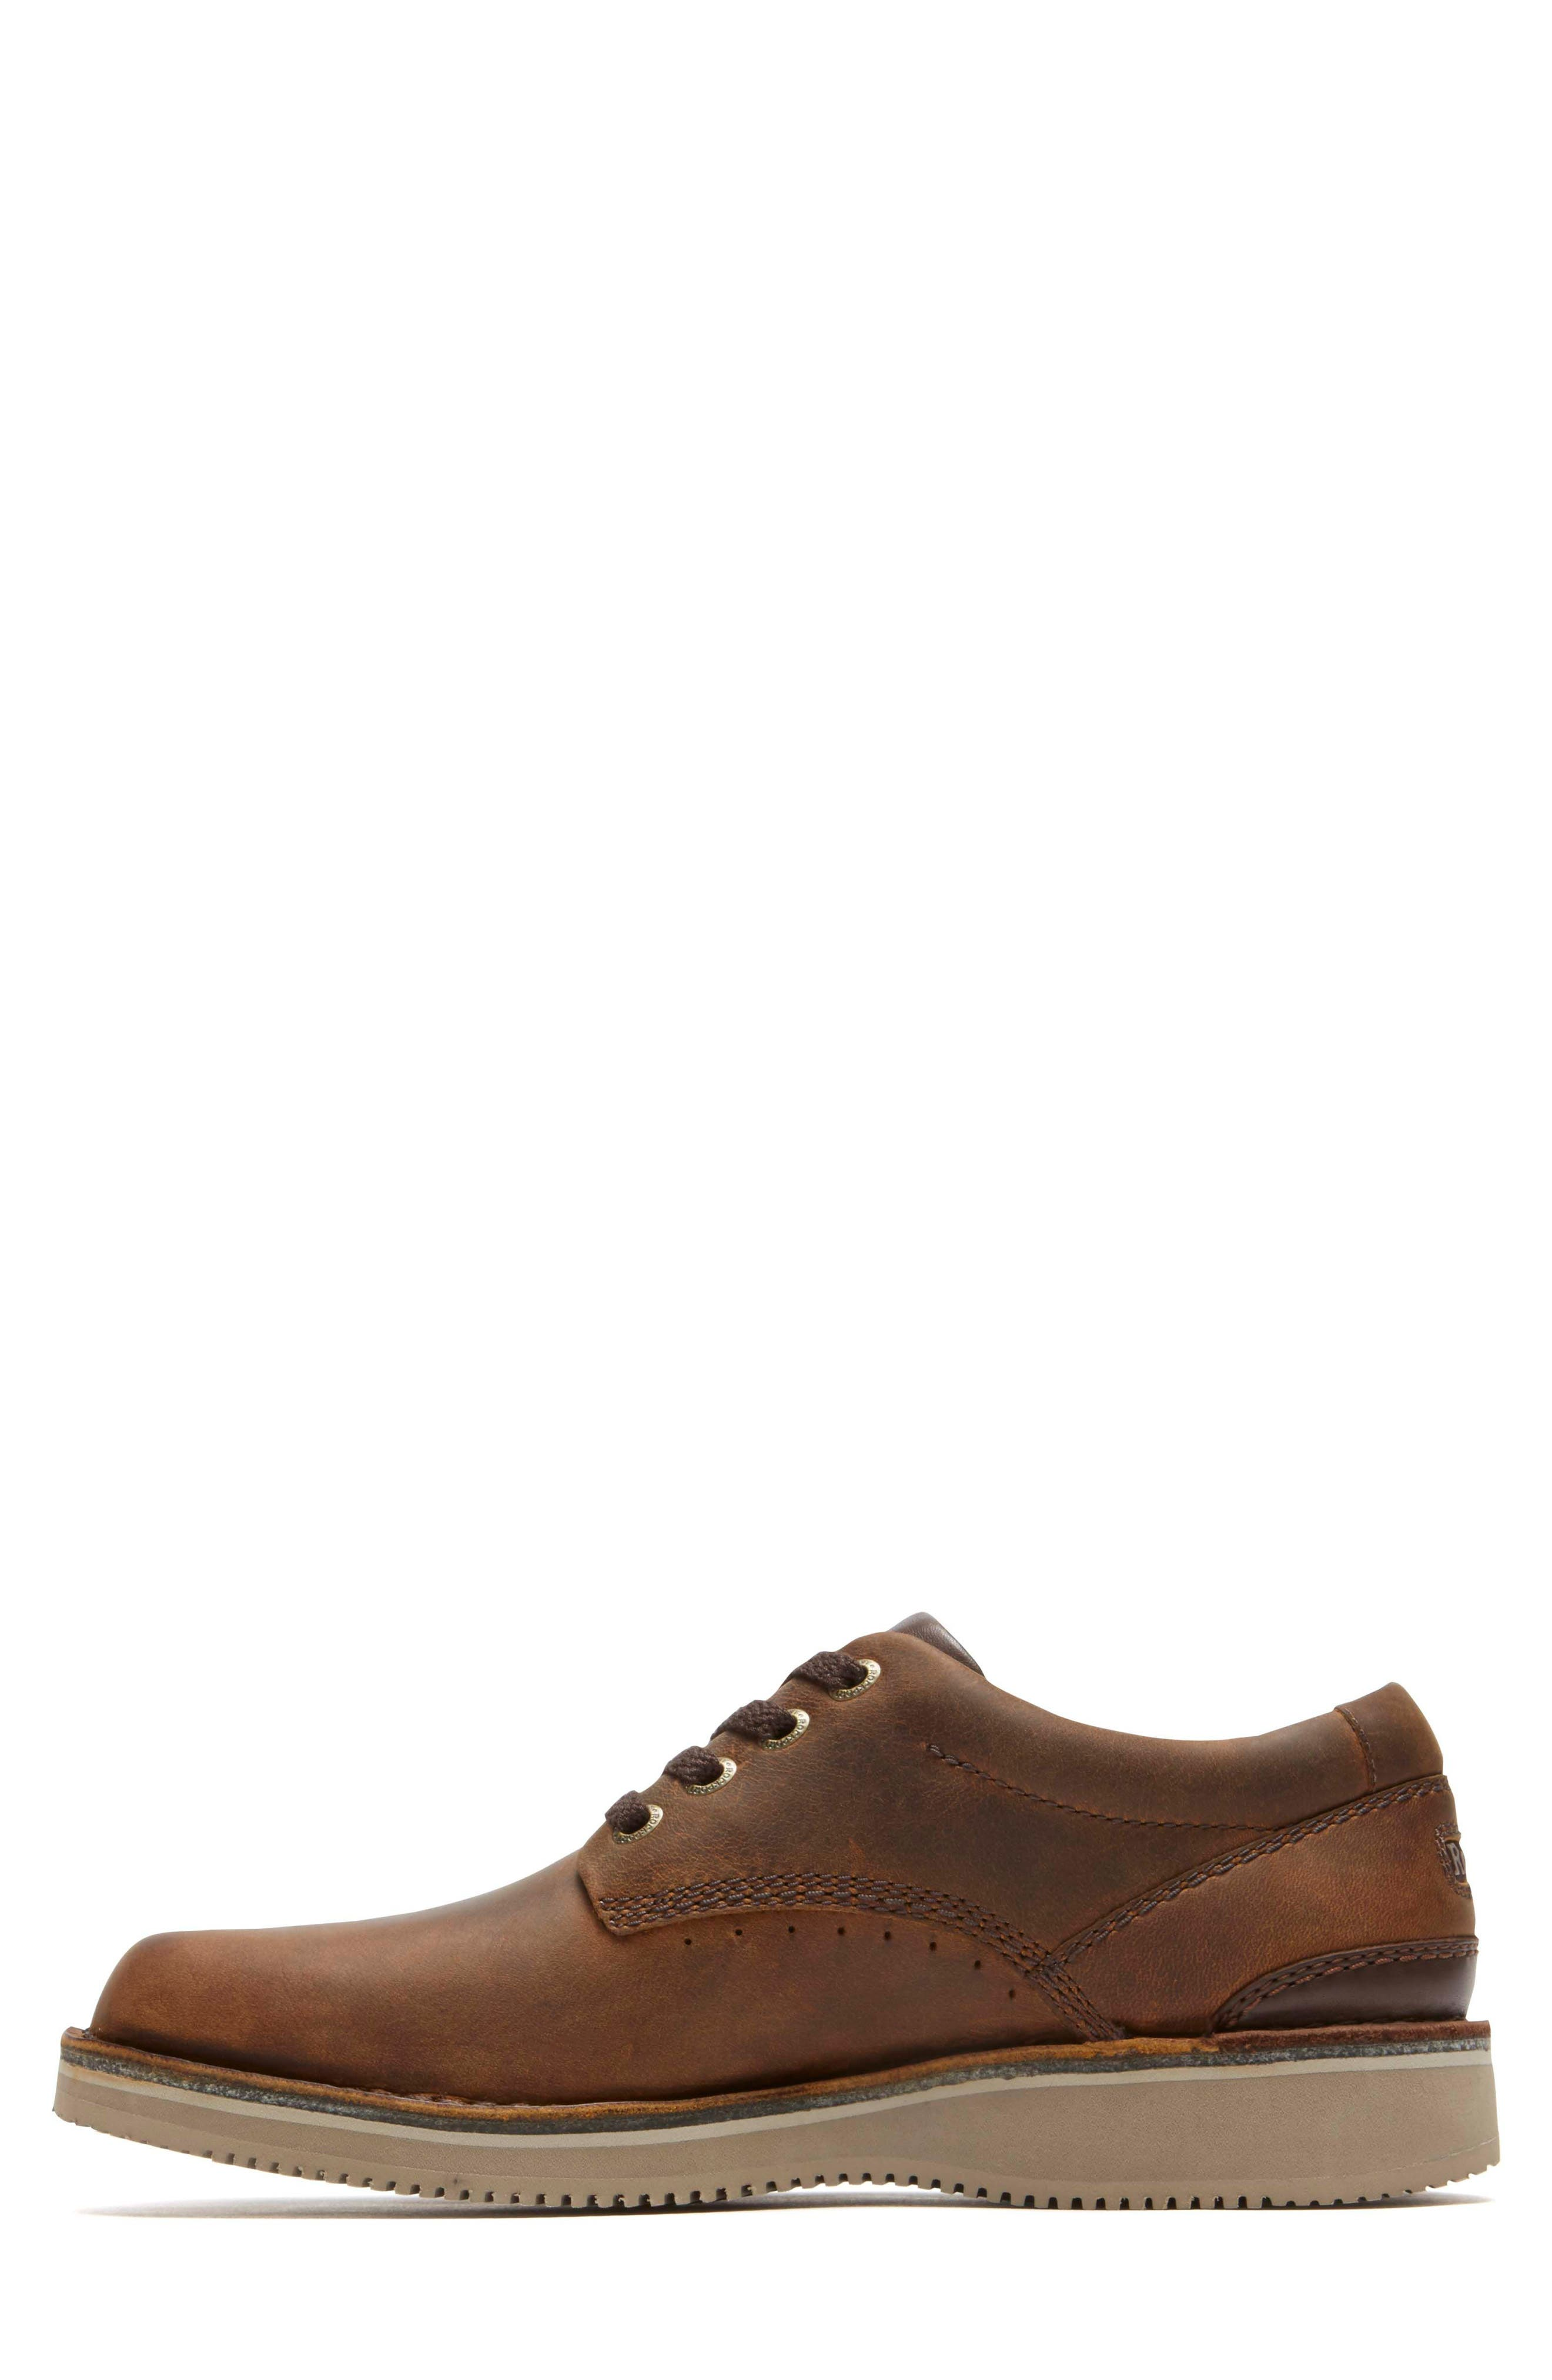 'Prestige Point' Plain Toe Derby,                             Alternate thumbnail 2, color,                             Beeswax Leather